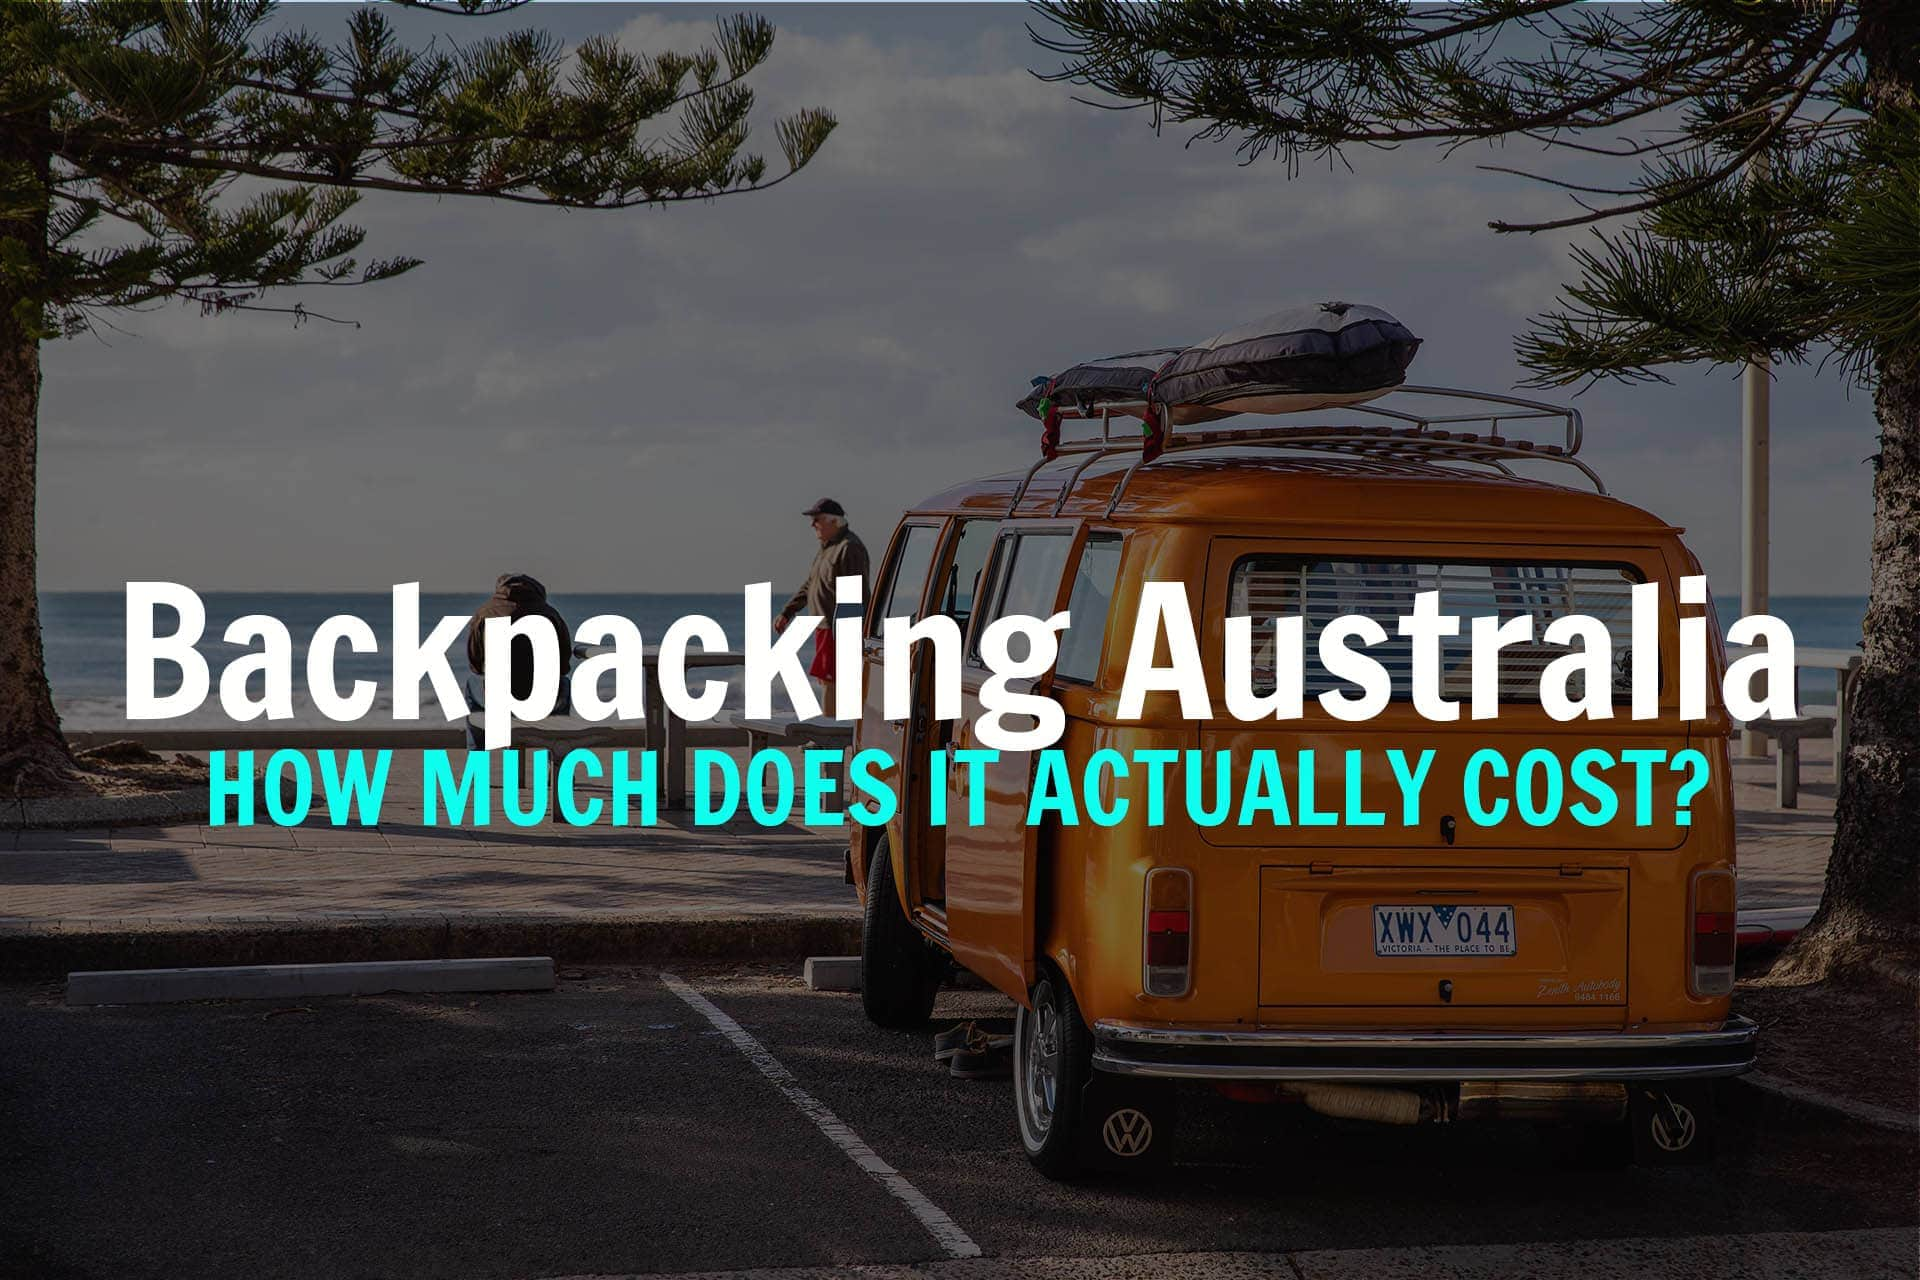 BACKPACKING-AUSTRALIA-COST